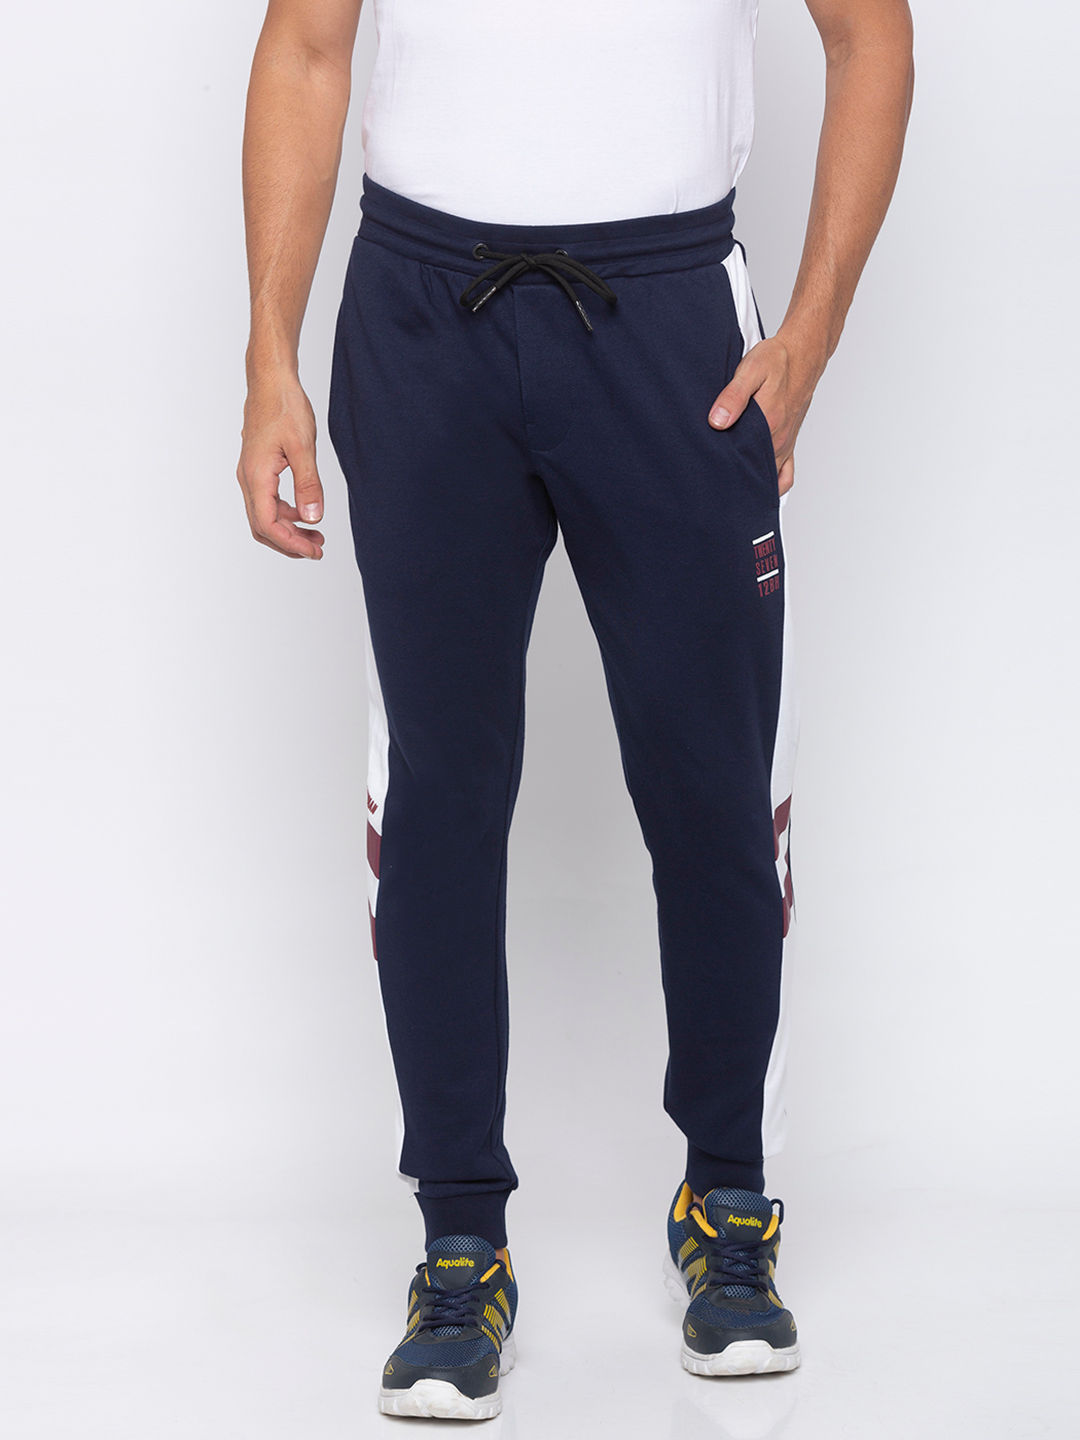 MENS TRACK PANT REGULAR FIT WITH CONTRAST SIDE PANEL